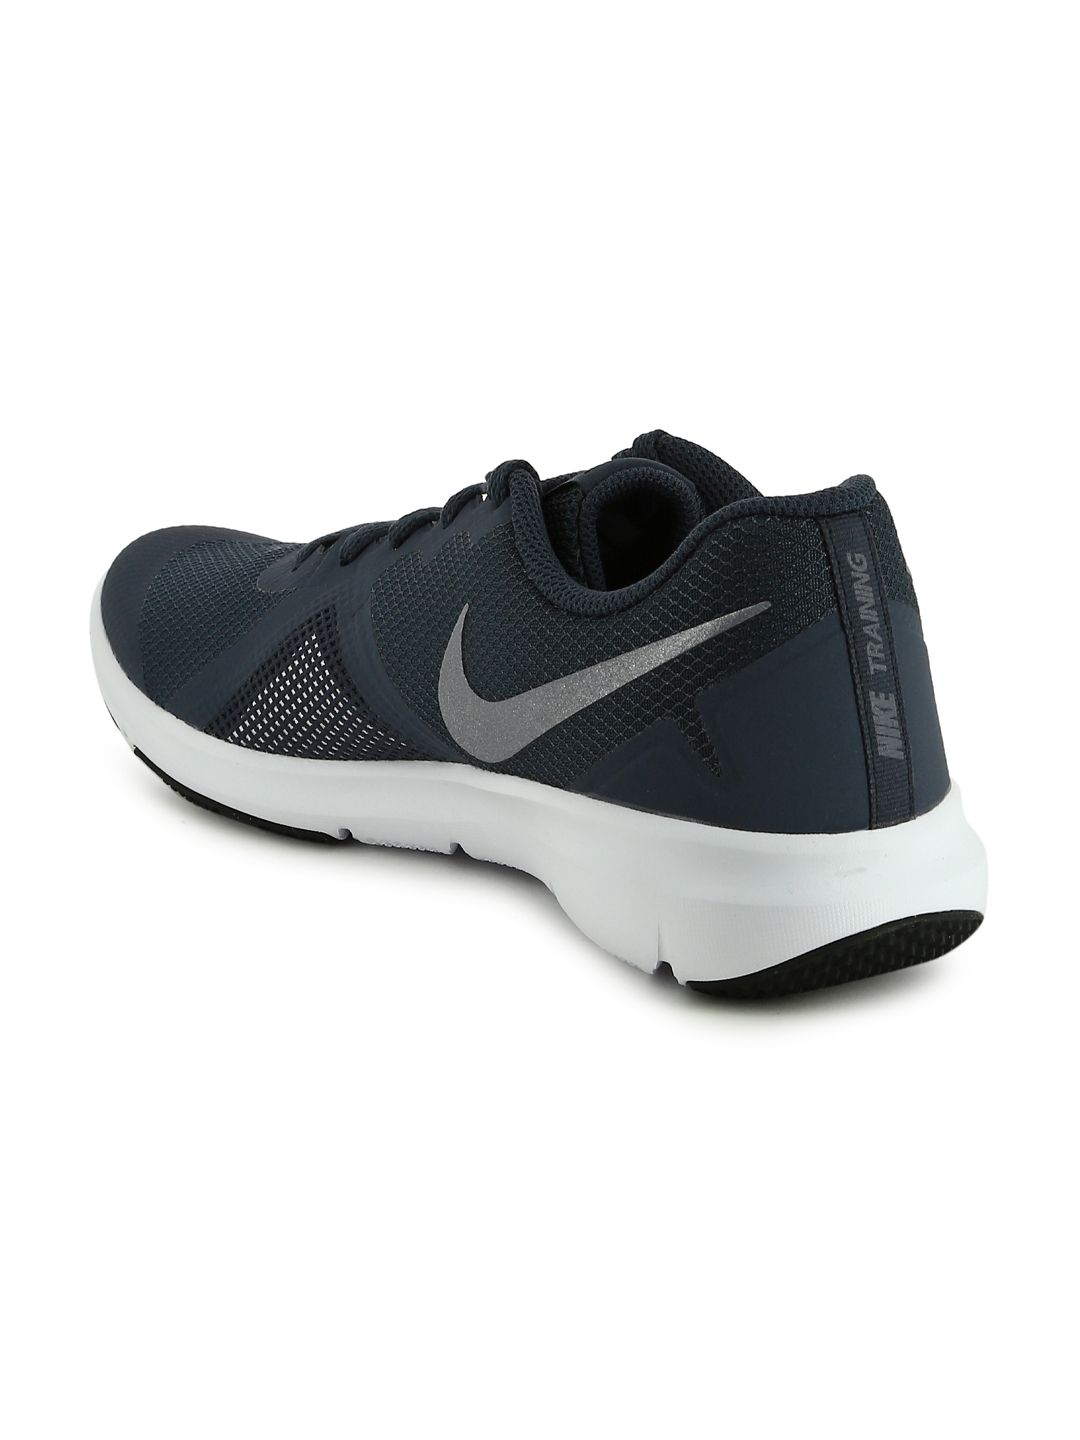 15c94b409deab Nike Men Navy Blue FLEX CONTROL II Training Shoes. This product is already  at its best price